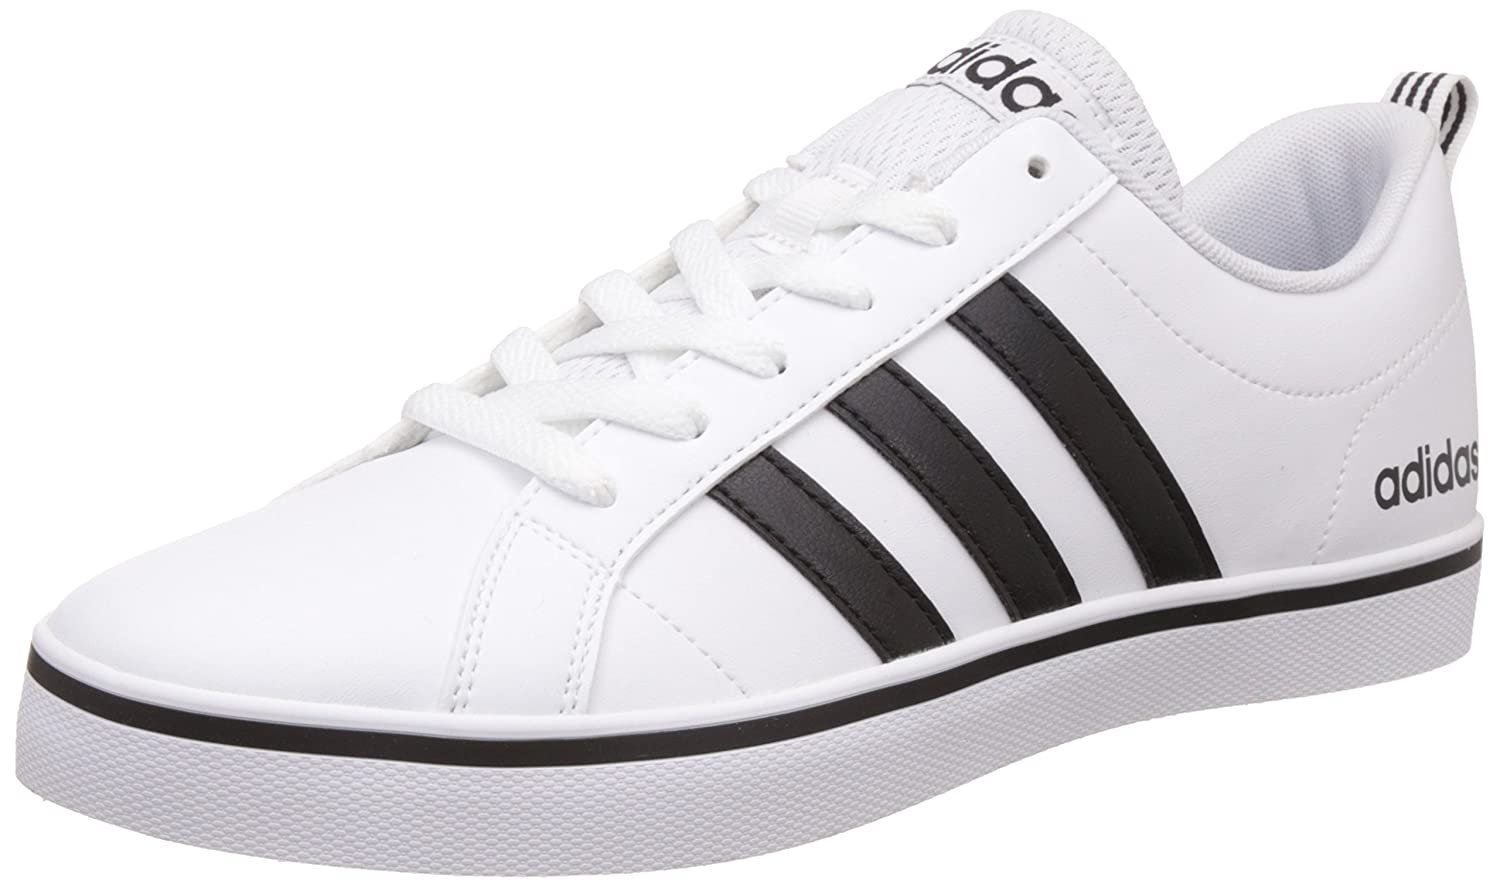 Chaussures Adidas 26 multicolores Casual gFql88zkf